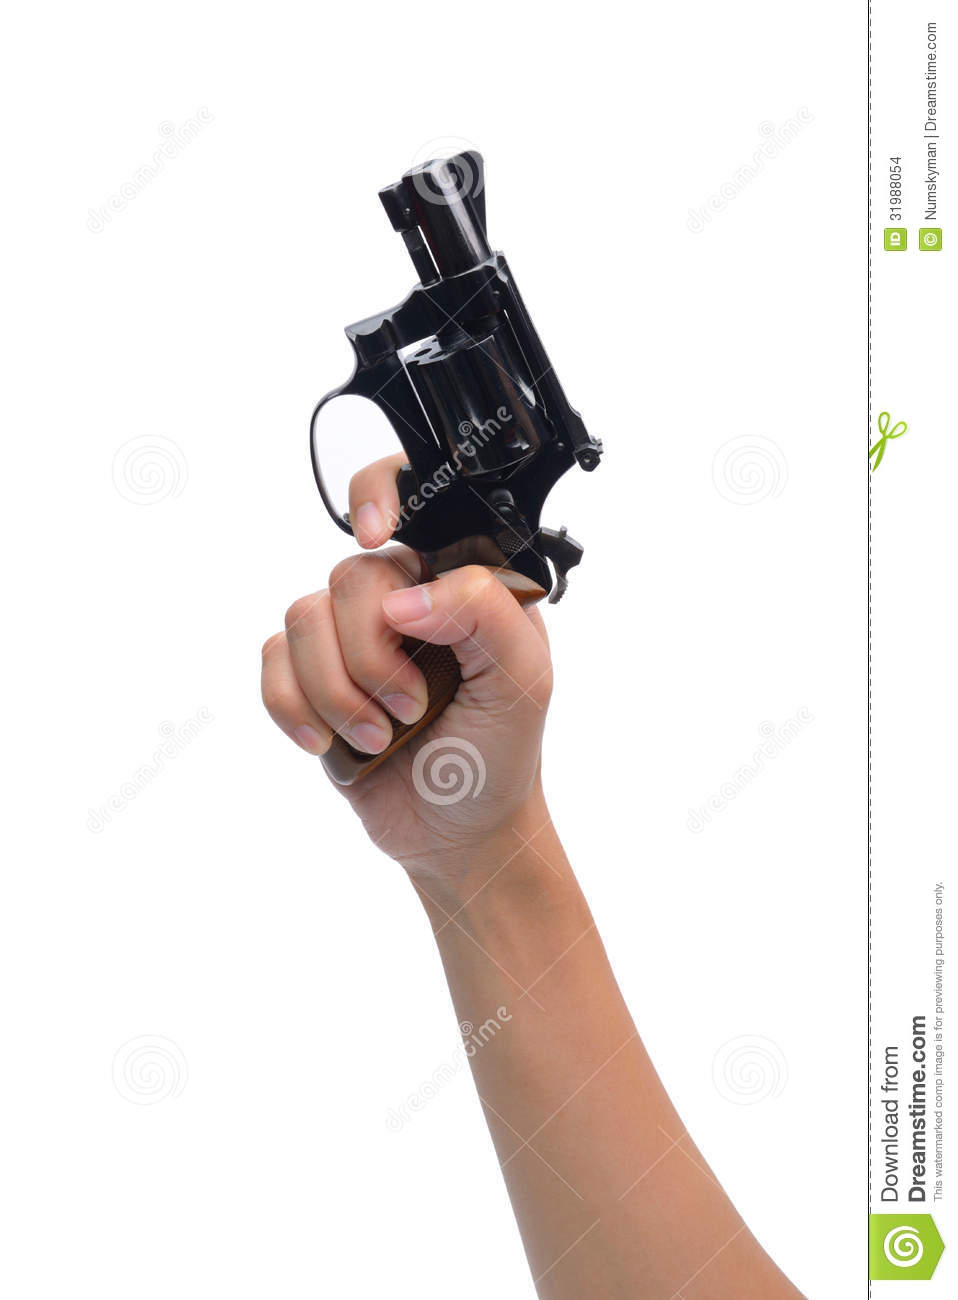 Hand Hold Revolver Gun Isolated Stock Photo - Image: 31988054